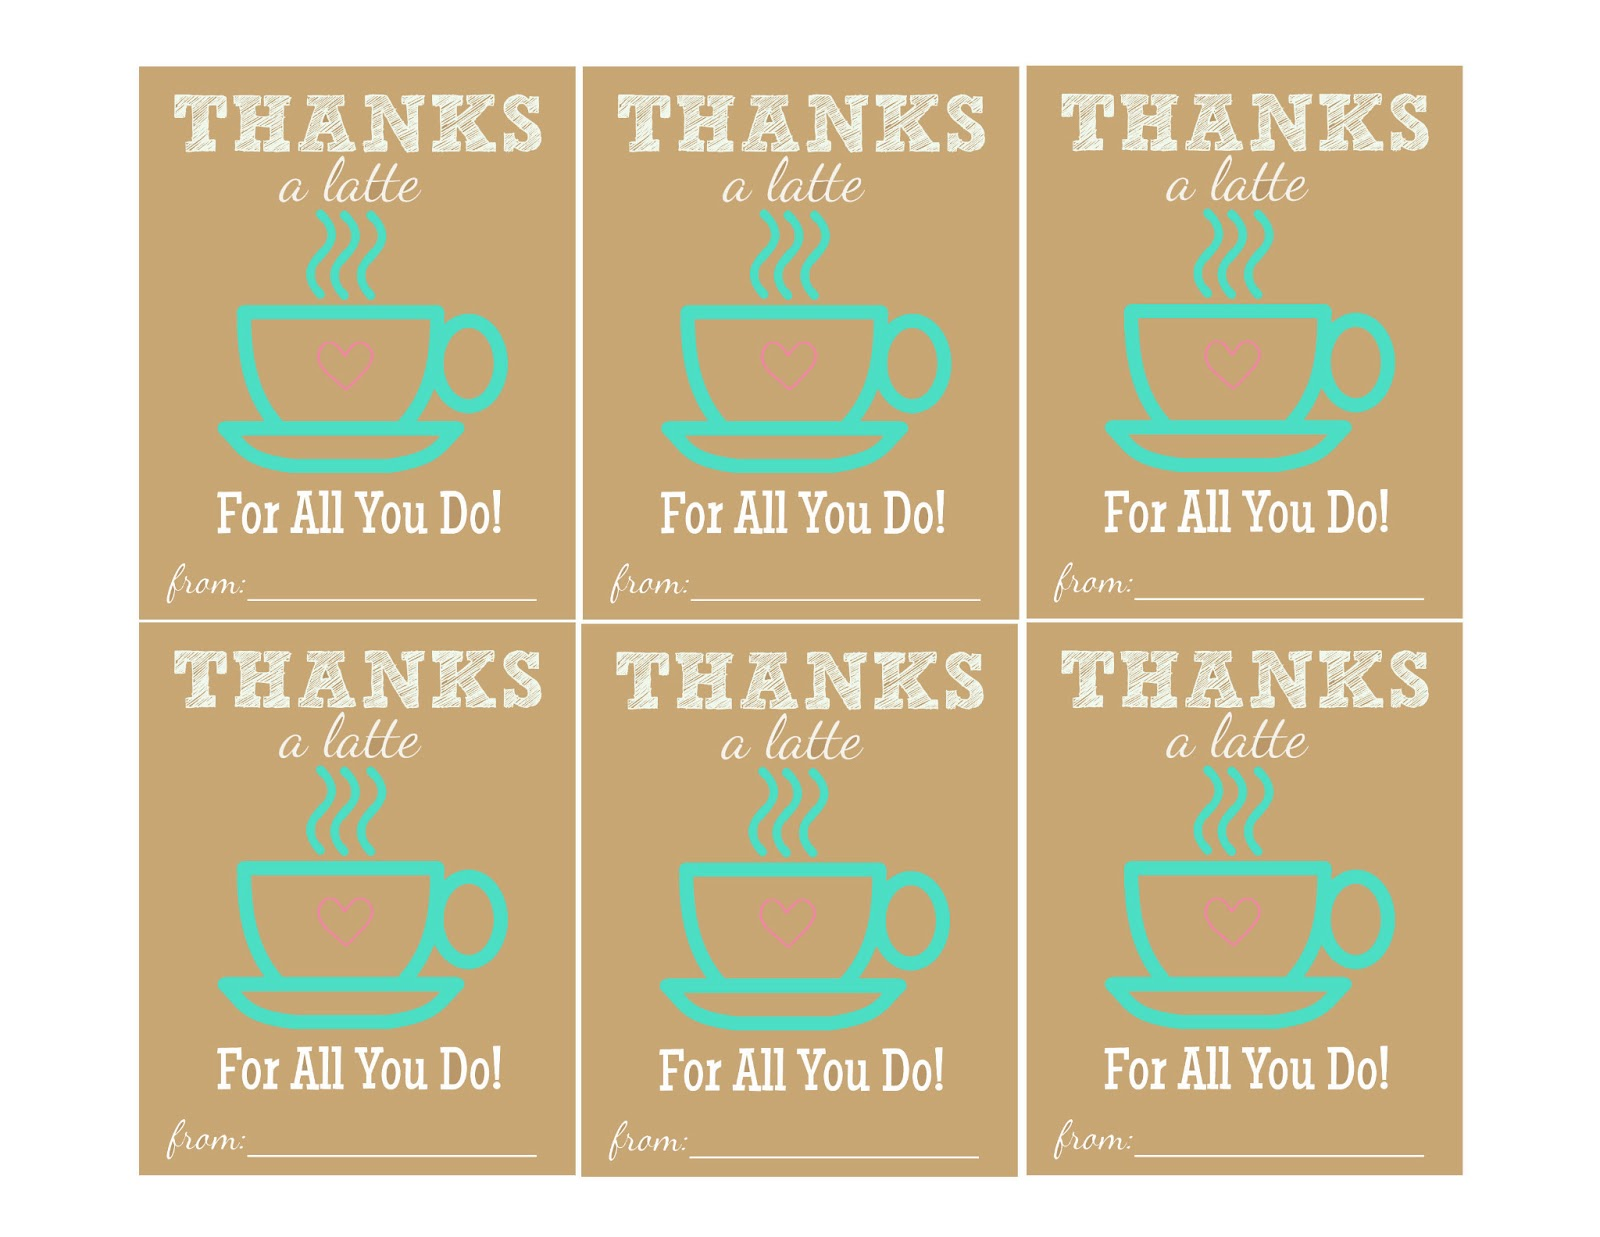 photo regarding Thanks a Latte Printable Tag named The Larson Lingo: Owing A Latte No cost Printable